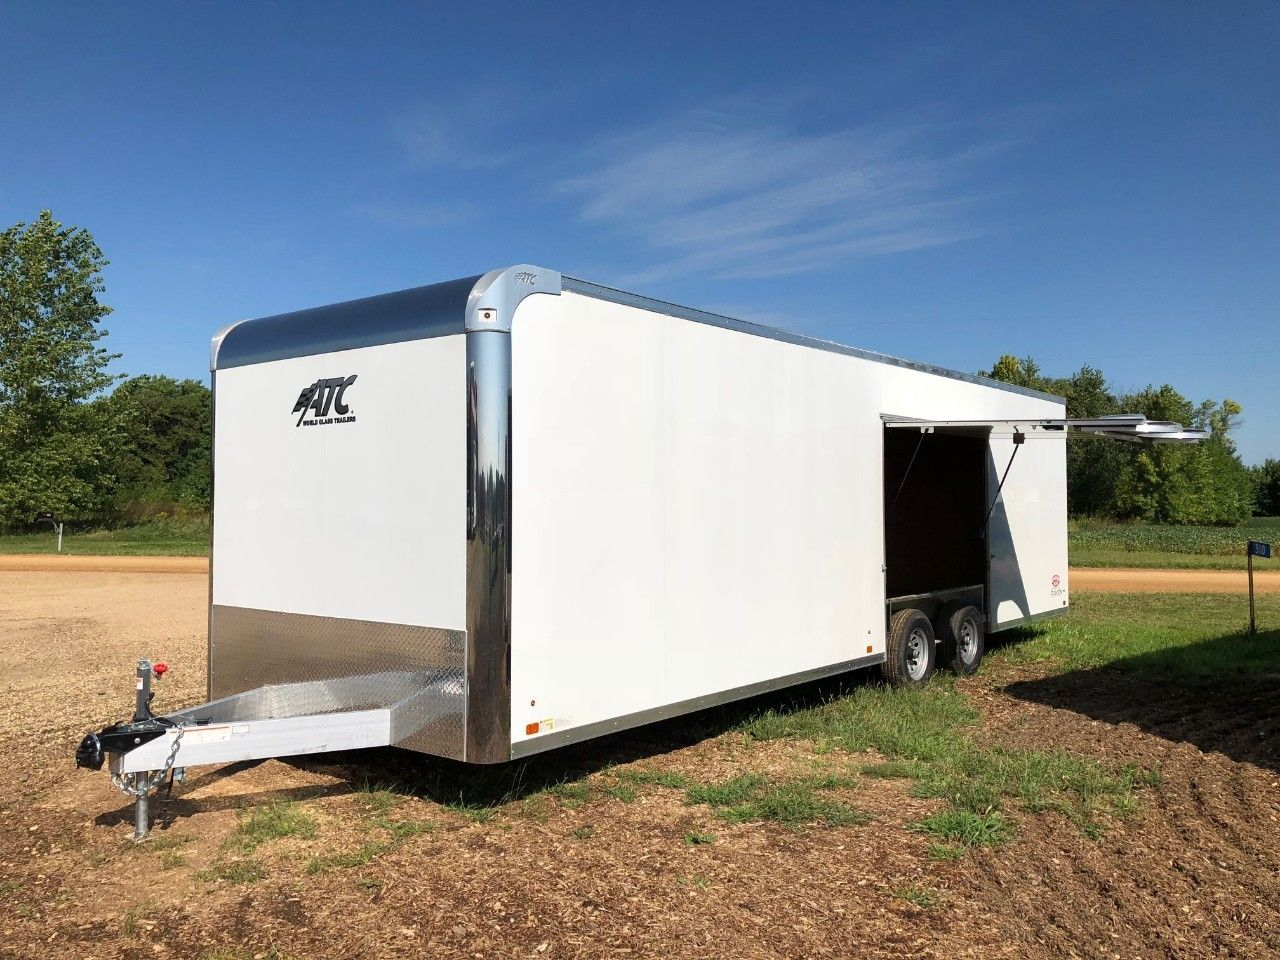 Check Out This 2019 Atc Aluminum Trailer Company Ravab8528 0 2t5